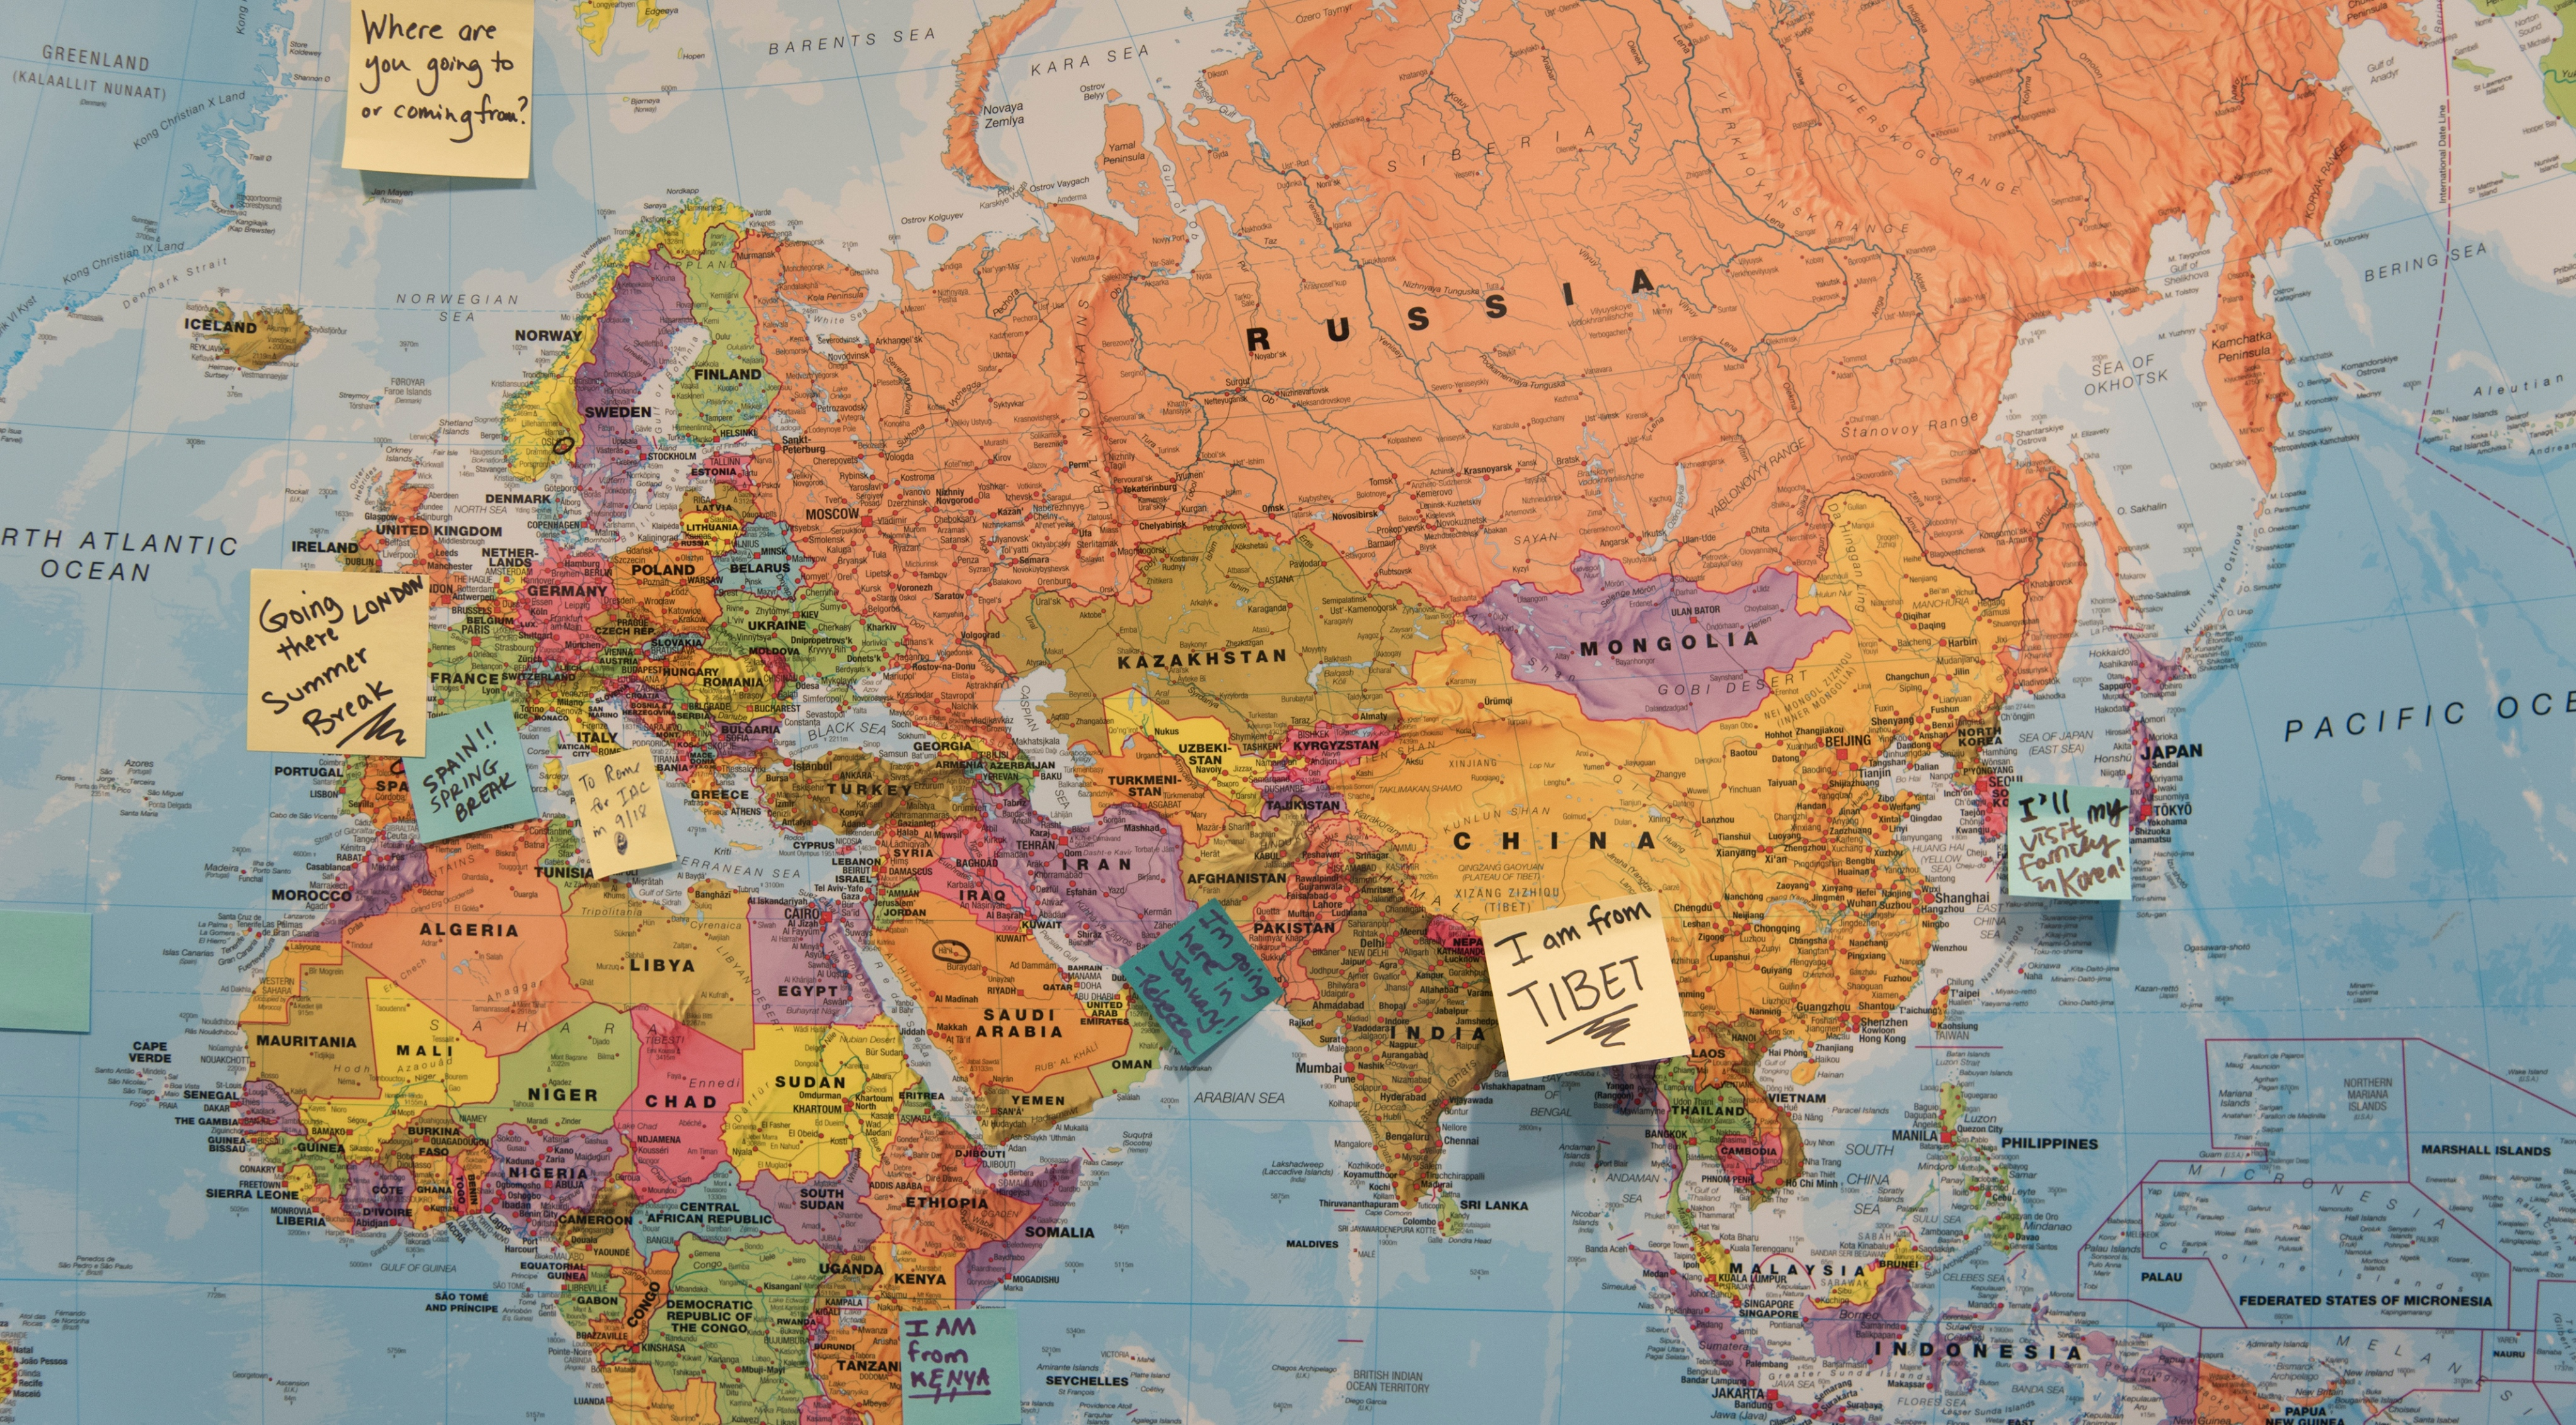 map of the world with post-it notes on countries where people have traveled